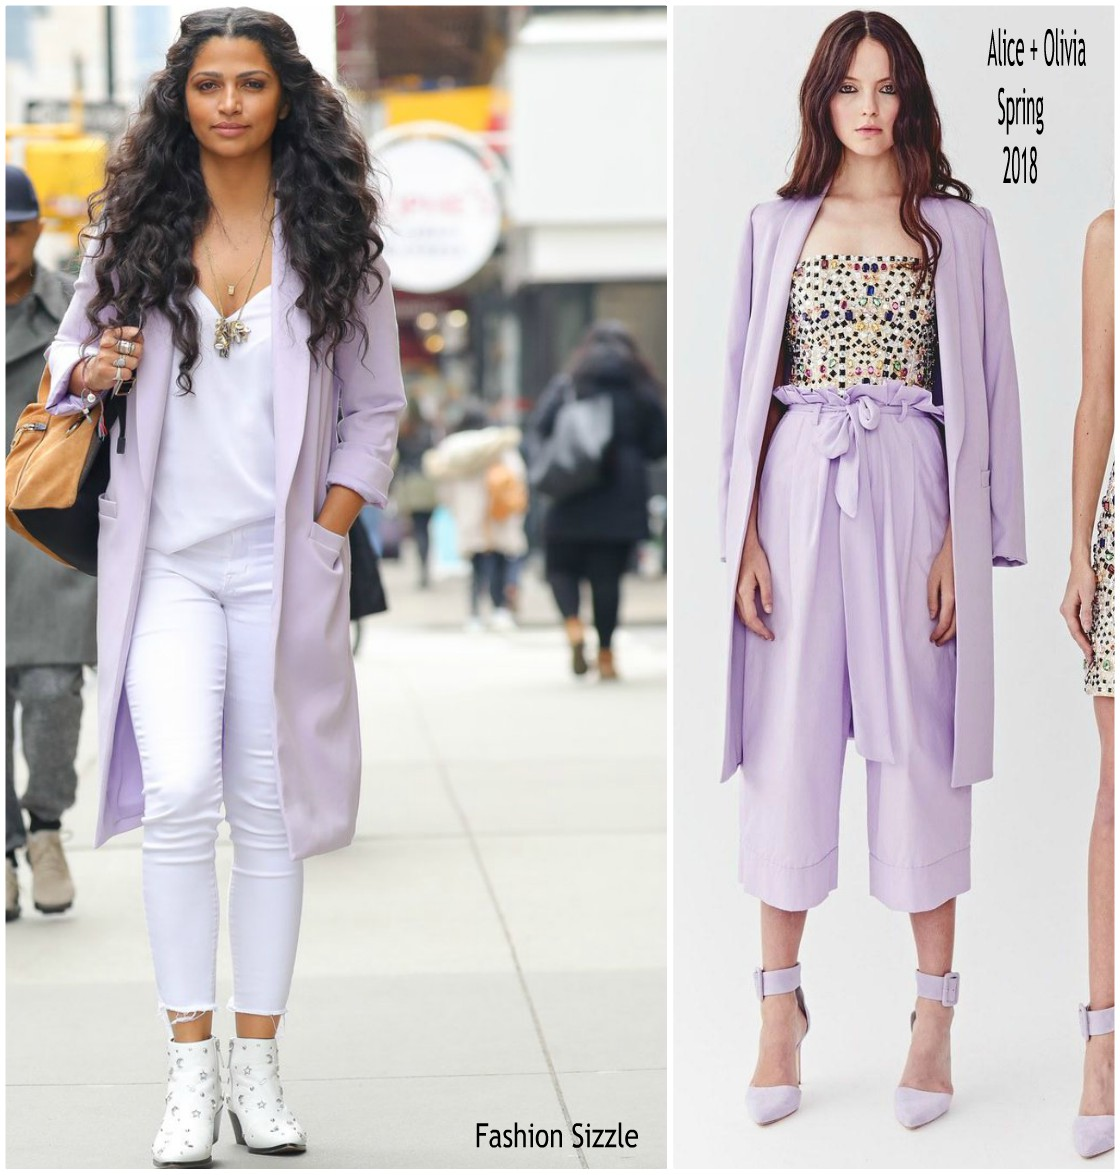 camila-alves-in-alice-olivia-lagence-j-brand-out-in-new-york